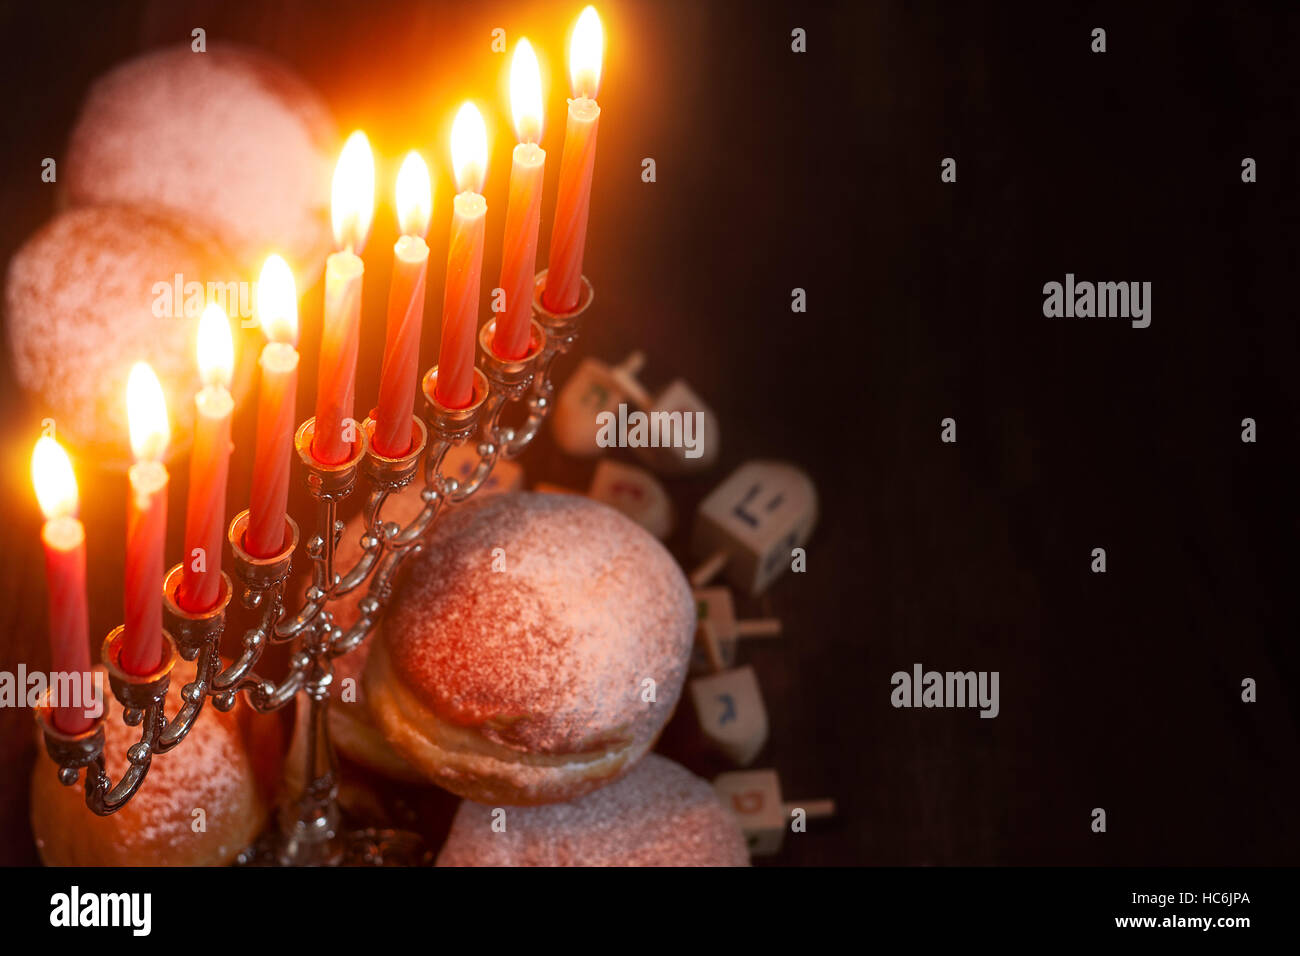 Symbols of jewish holiday hanukkah - menorah, donuts sufganiyot and dreidels - Stock Image